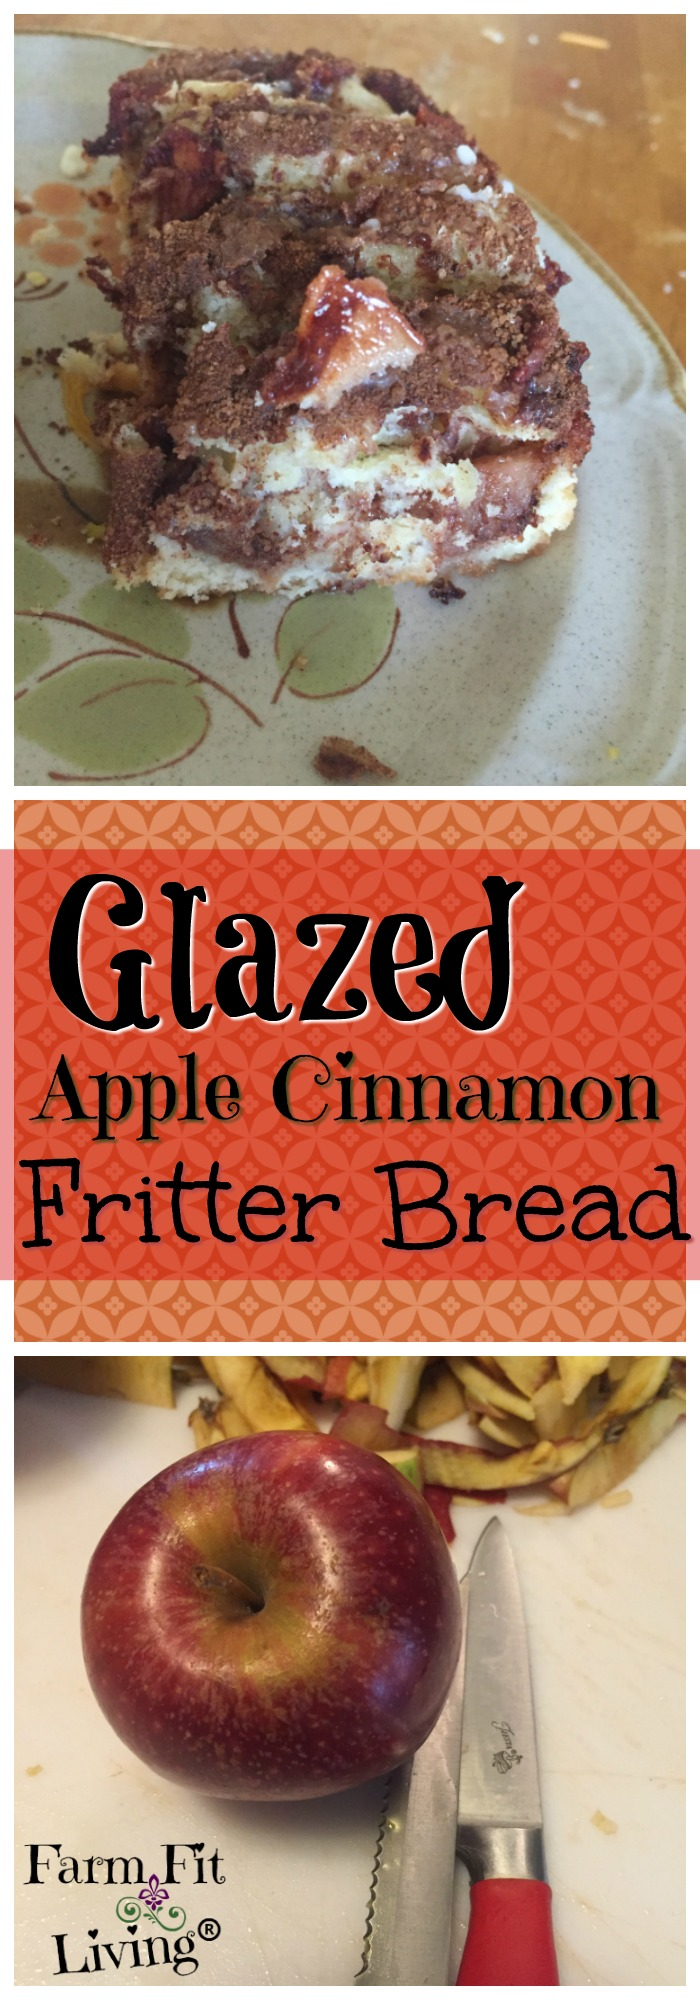 Glazed Apple Cinnamon Bread is a Farmer's Market Fall favorite. If you love apples and cinnamon rolls, you really need to try this easy-to-make recipe.